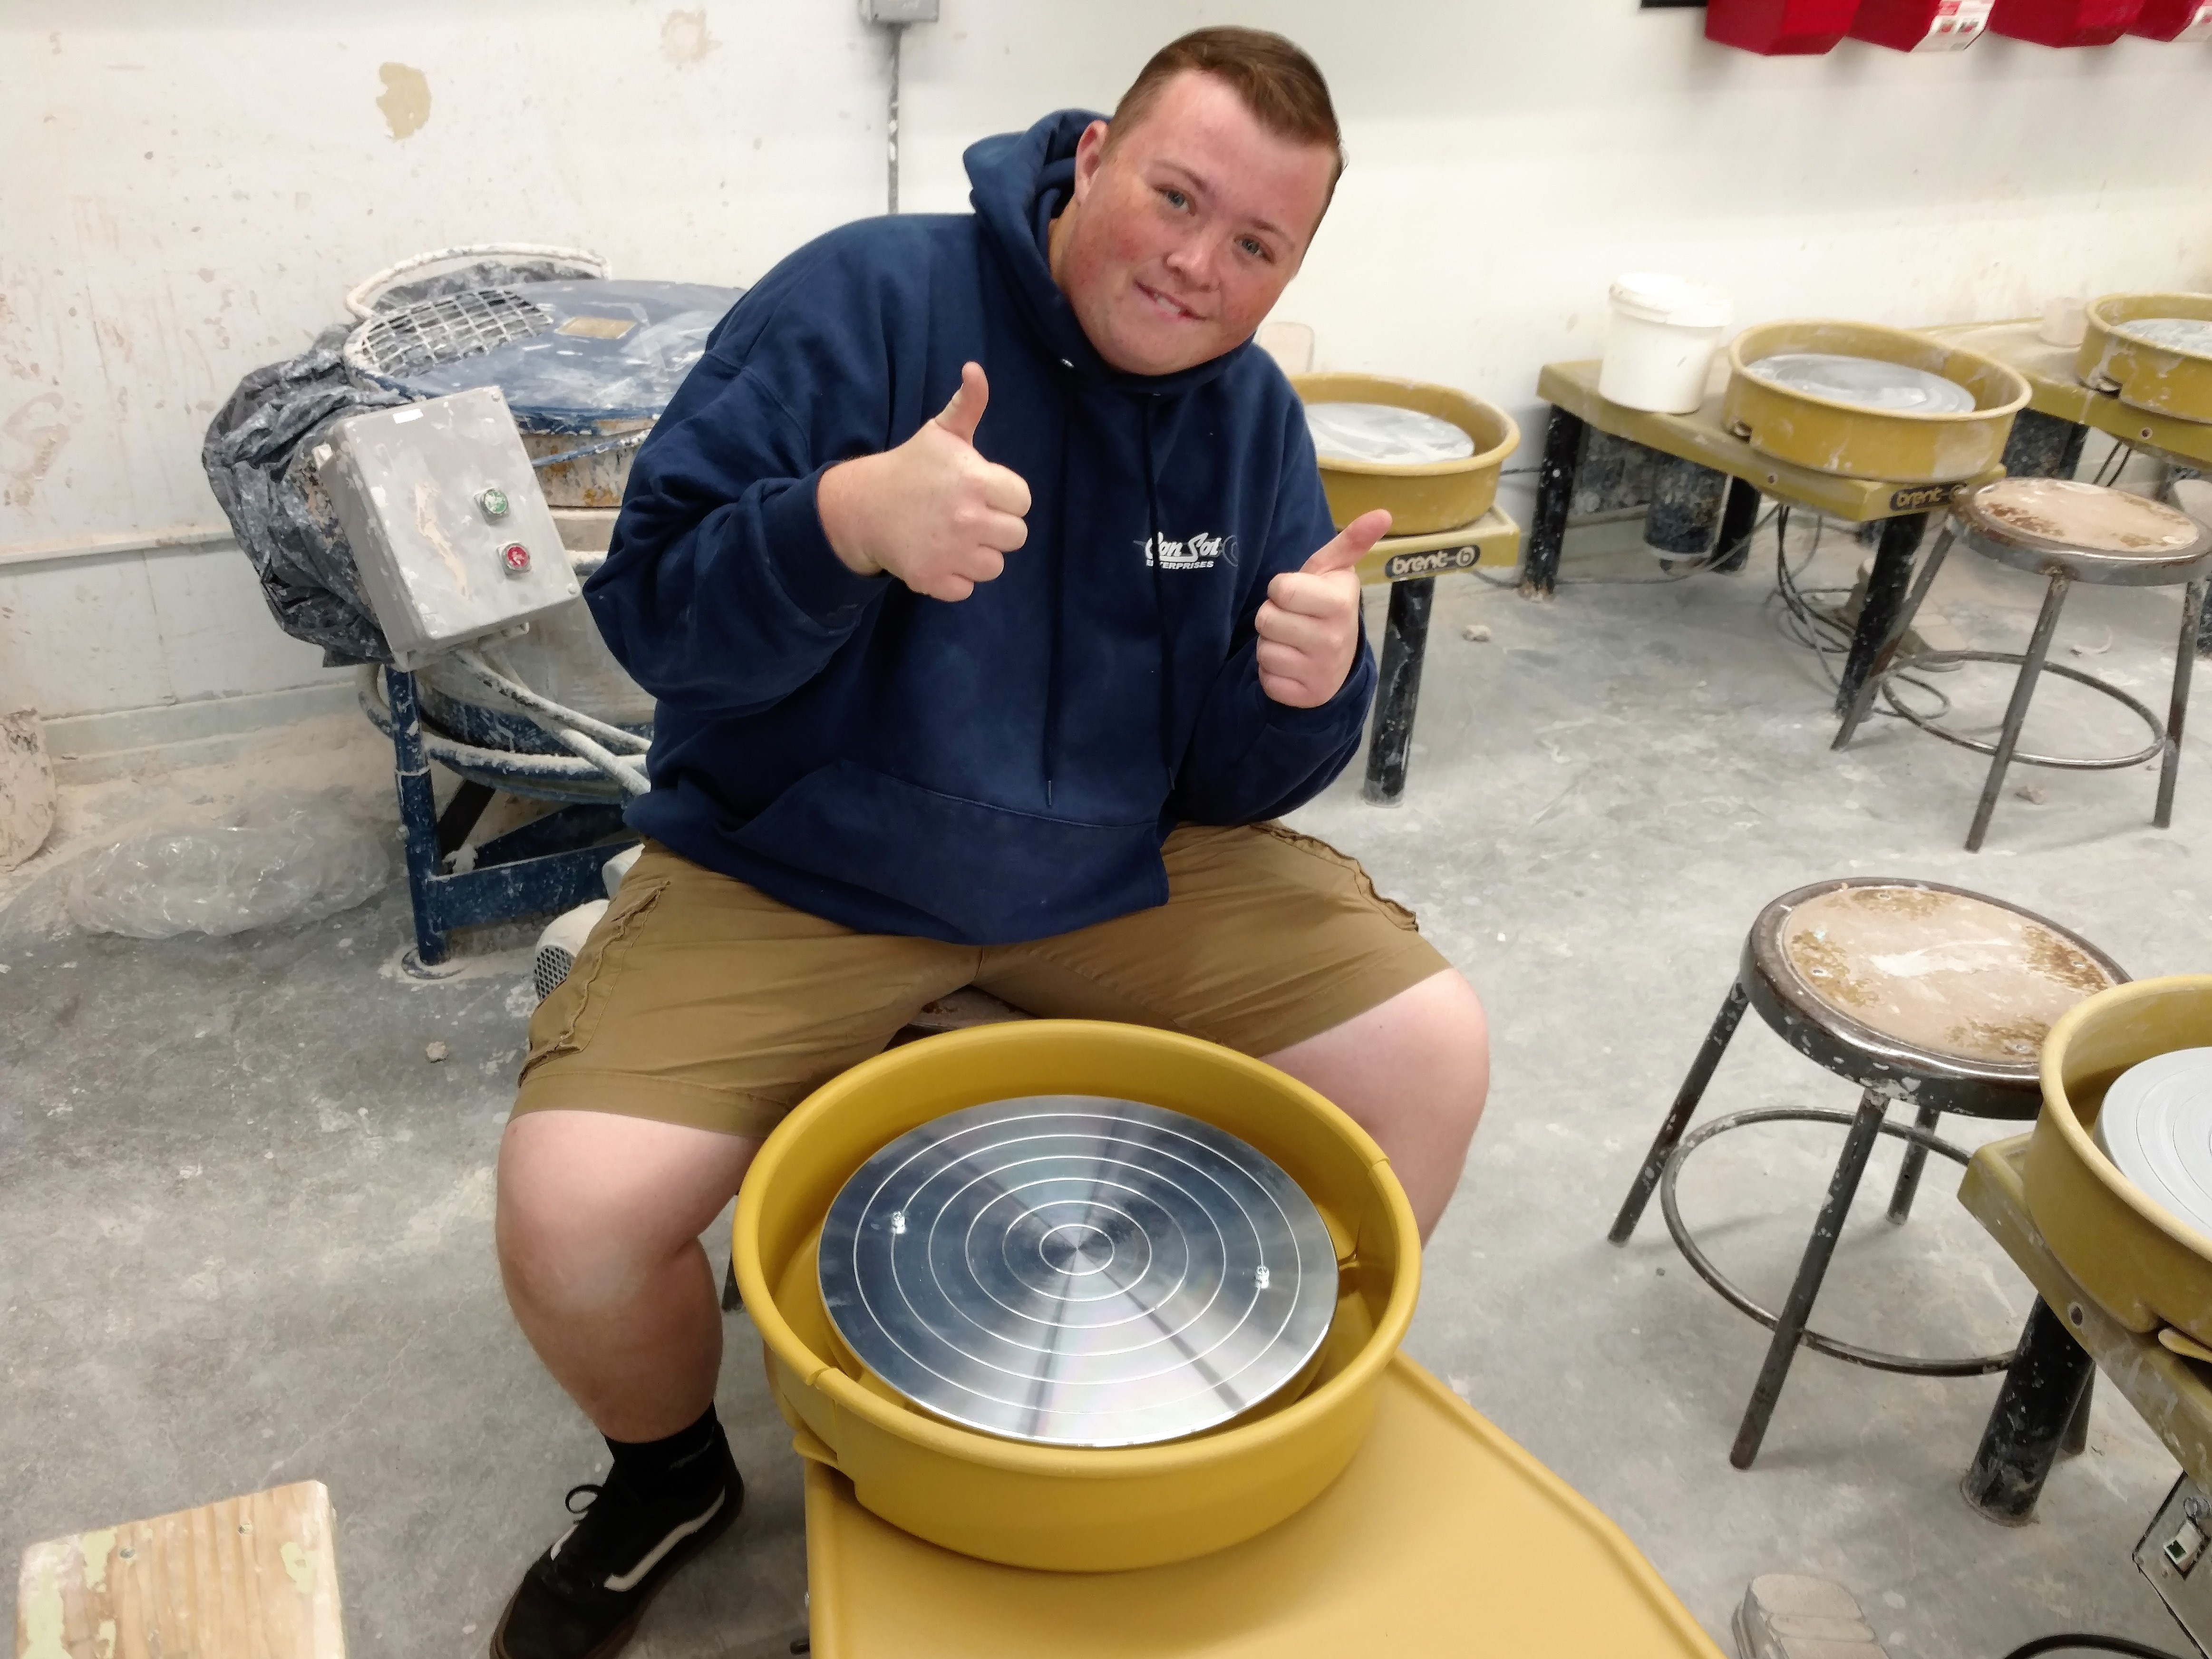 A high school student sitting in front of one of the pottery tools and showing his thumbs up